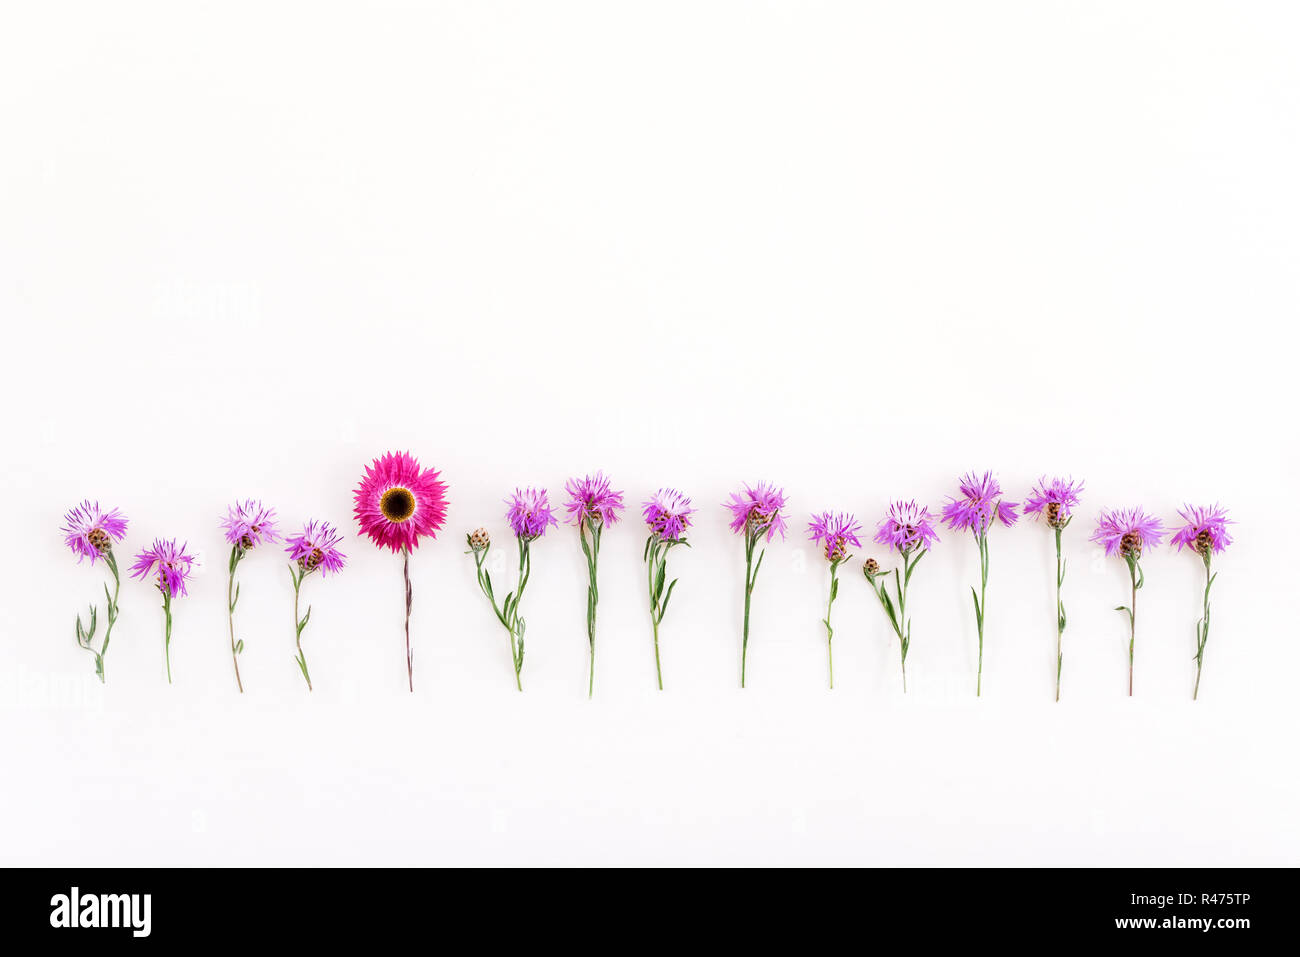 Pink strawflower in a row of wild purple cornflowers, on white background. - Stock Image